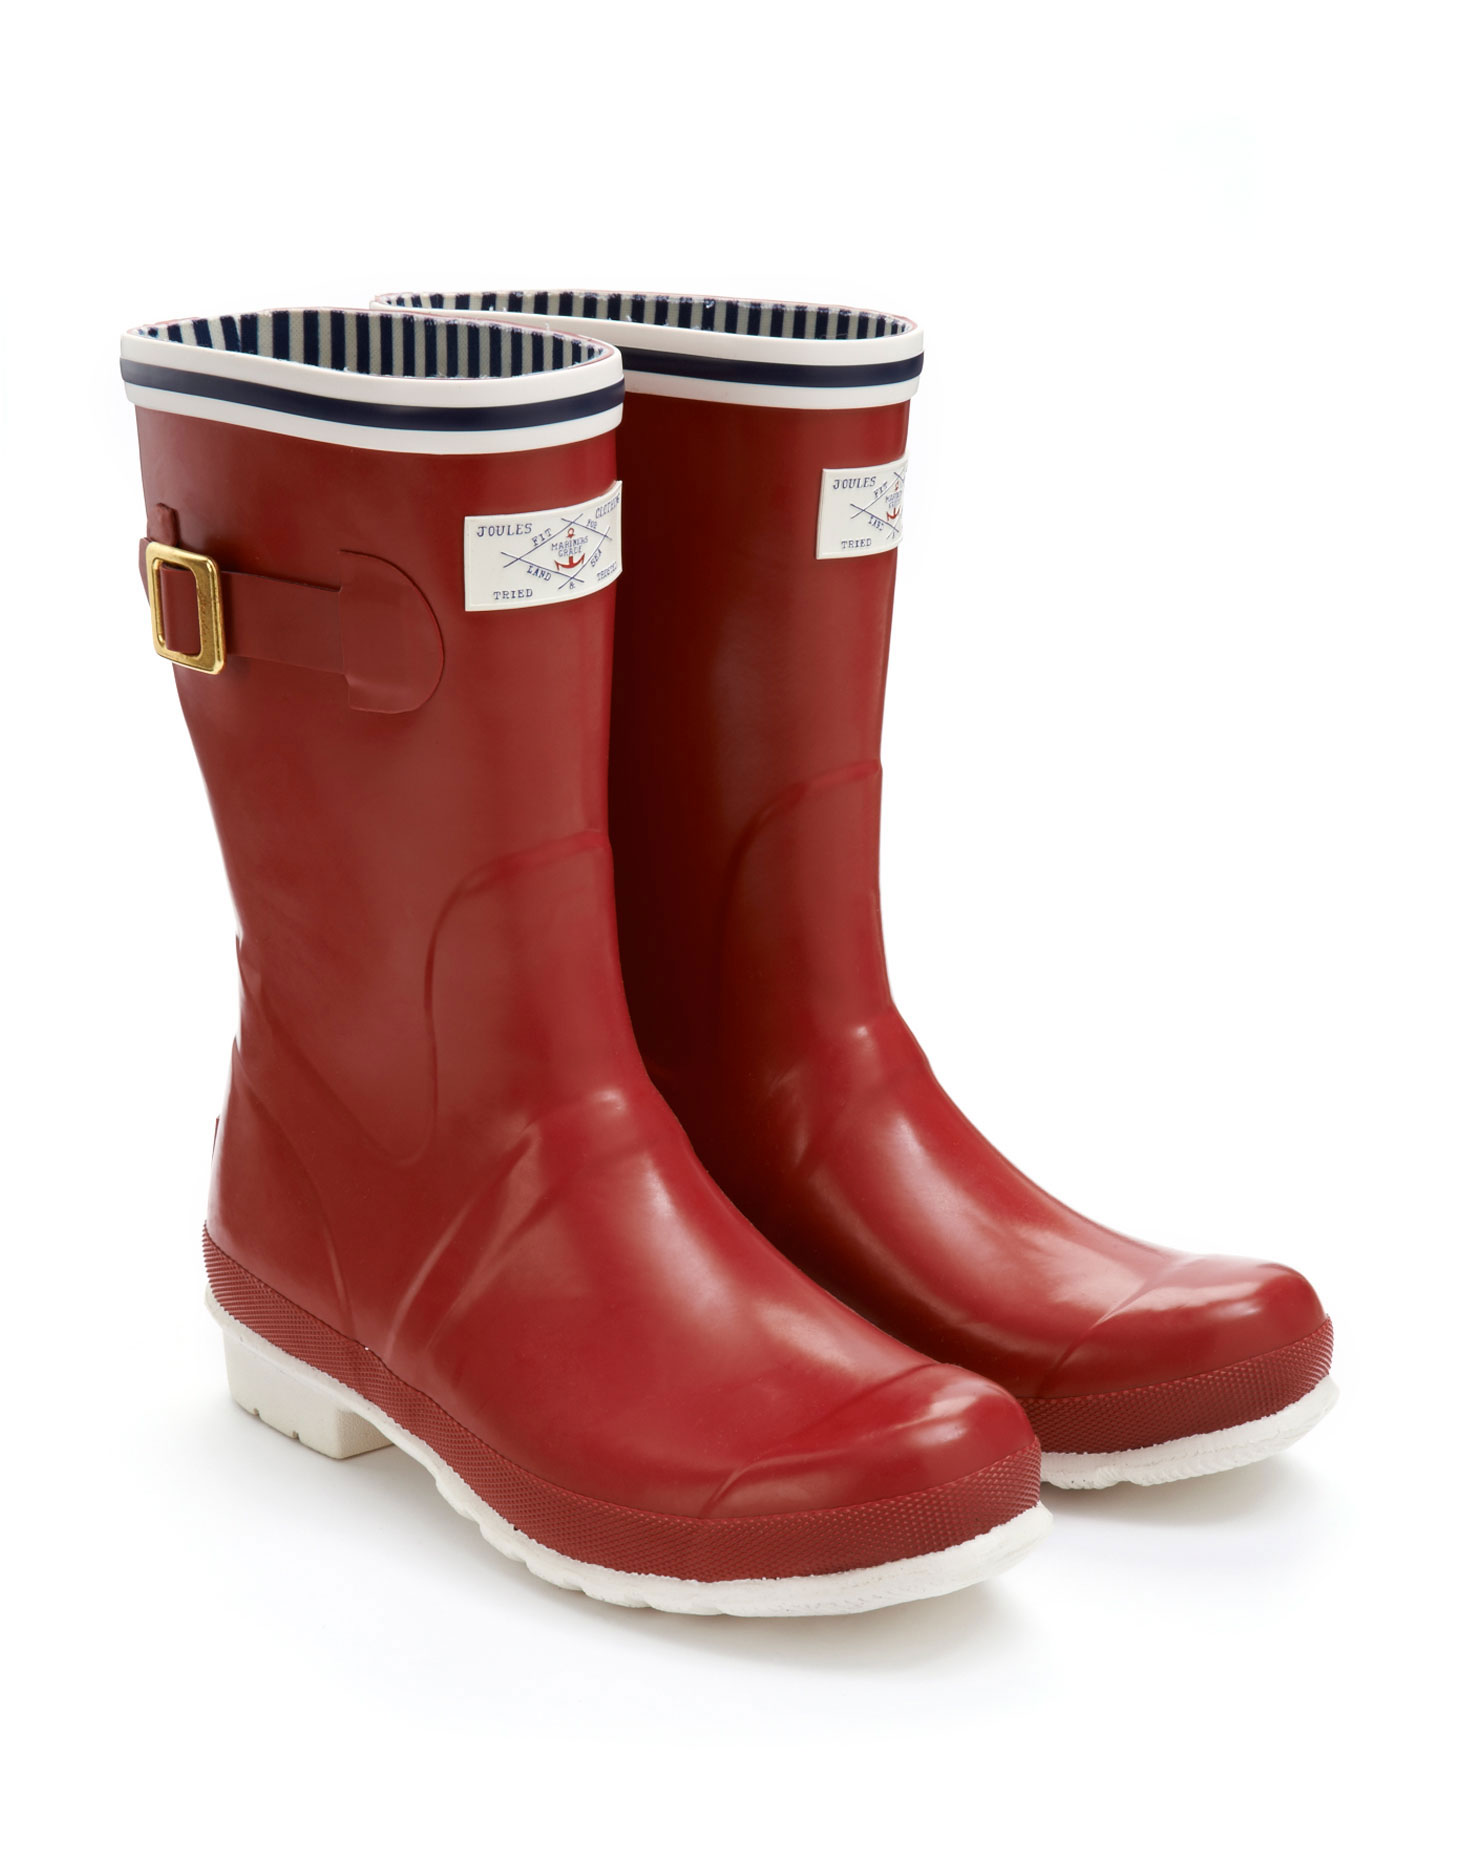 Womens Red Rain Boots tX3lY2y8